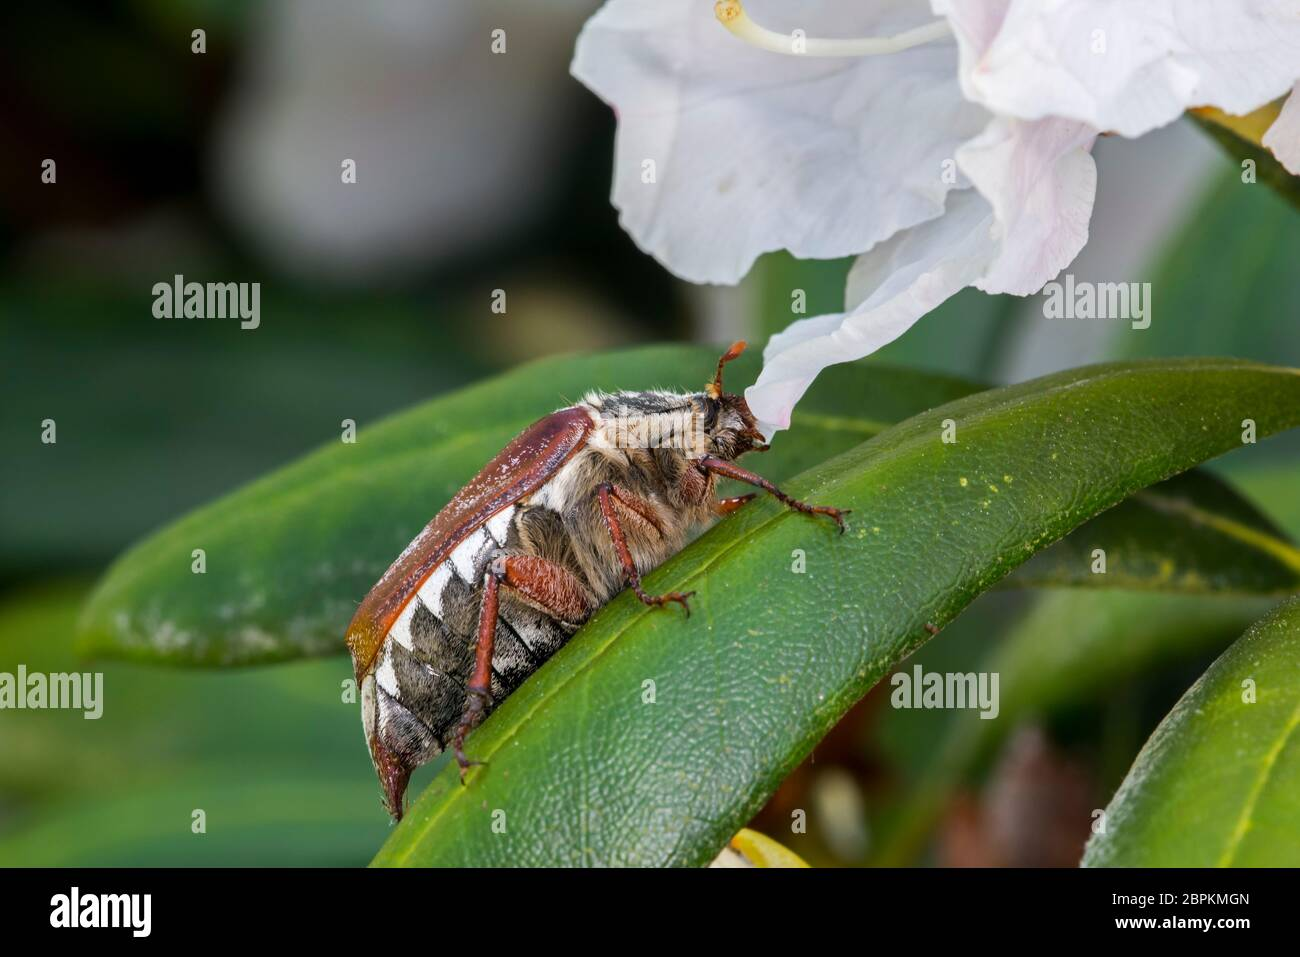 Common cockchafer / Maybug (Melolontha melolontha) on leaf of rhododendron in flower in garden in spring Stock Photo